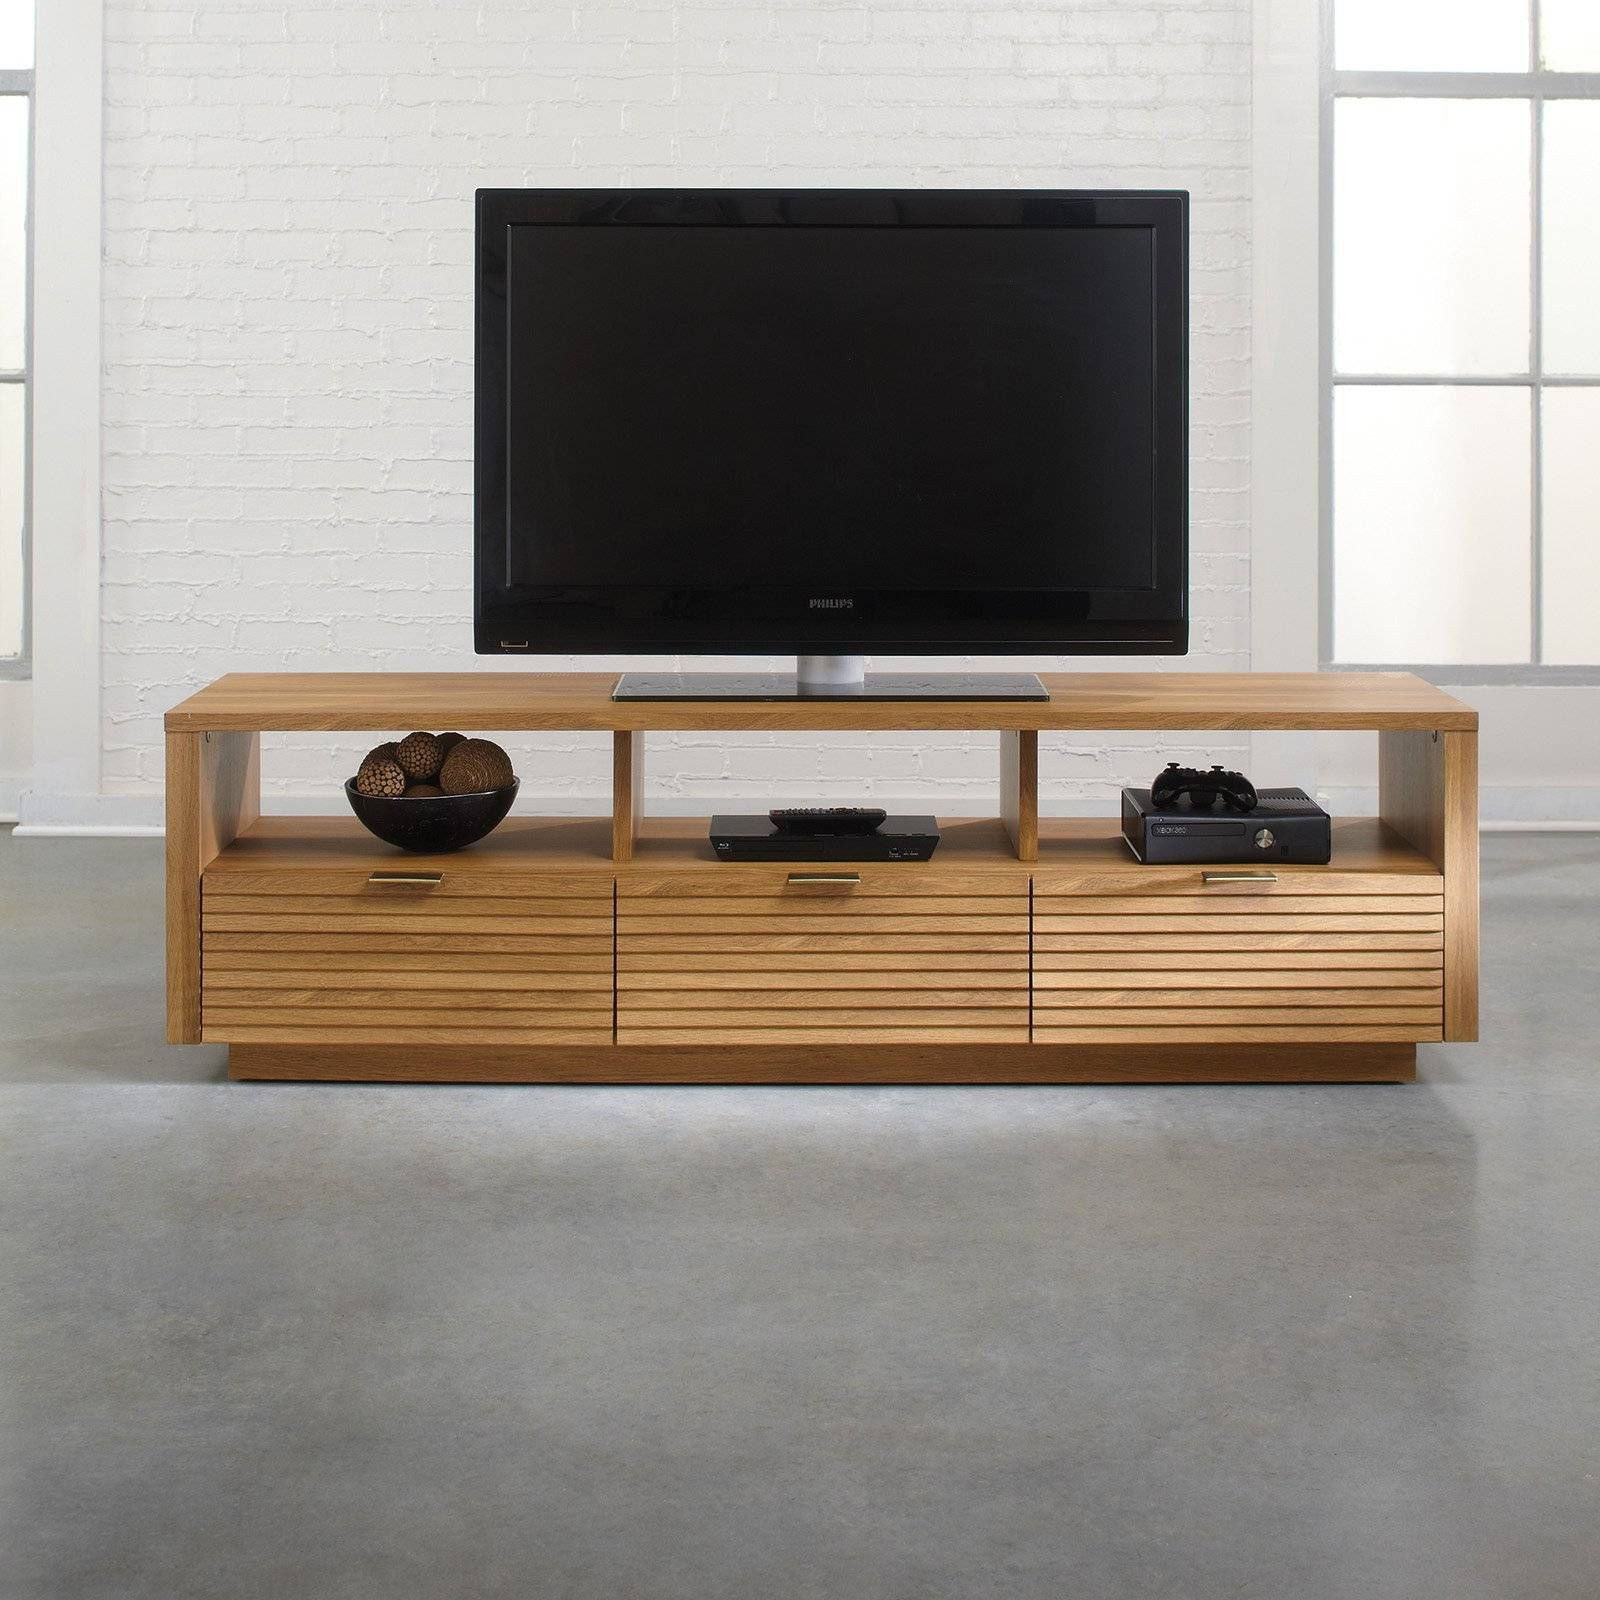 Belham Living Carter Mid Century Modern Tv Stand | Hayneedle Within Modern Low Profile Tv Stands (View 9 of 15)